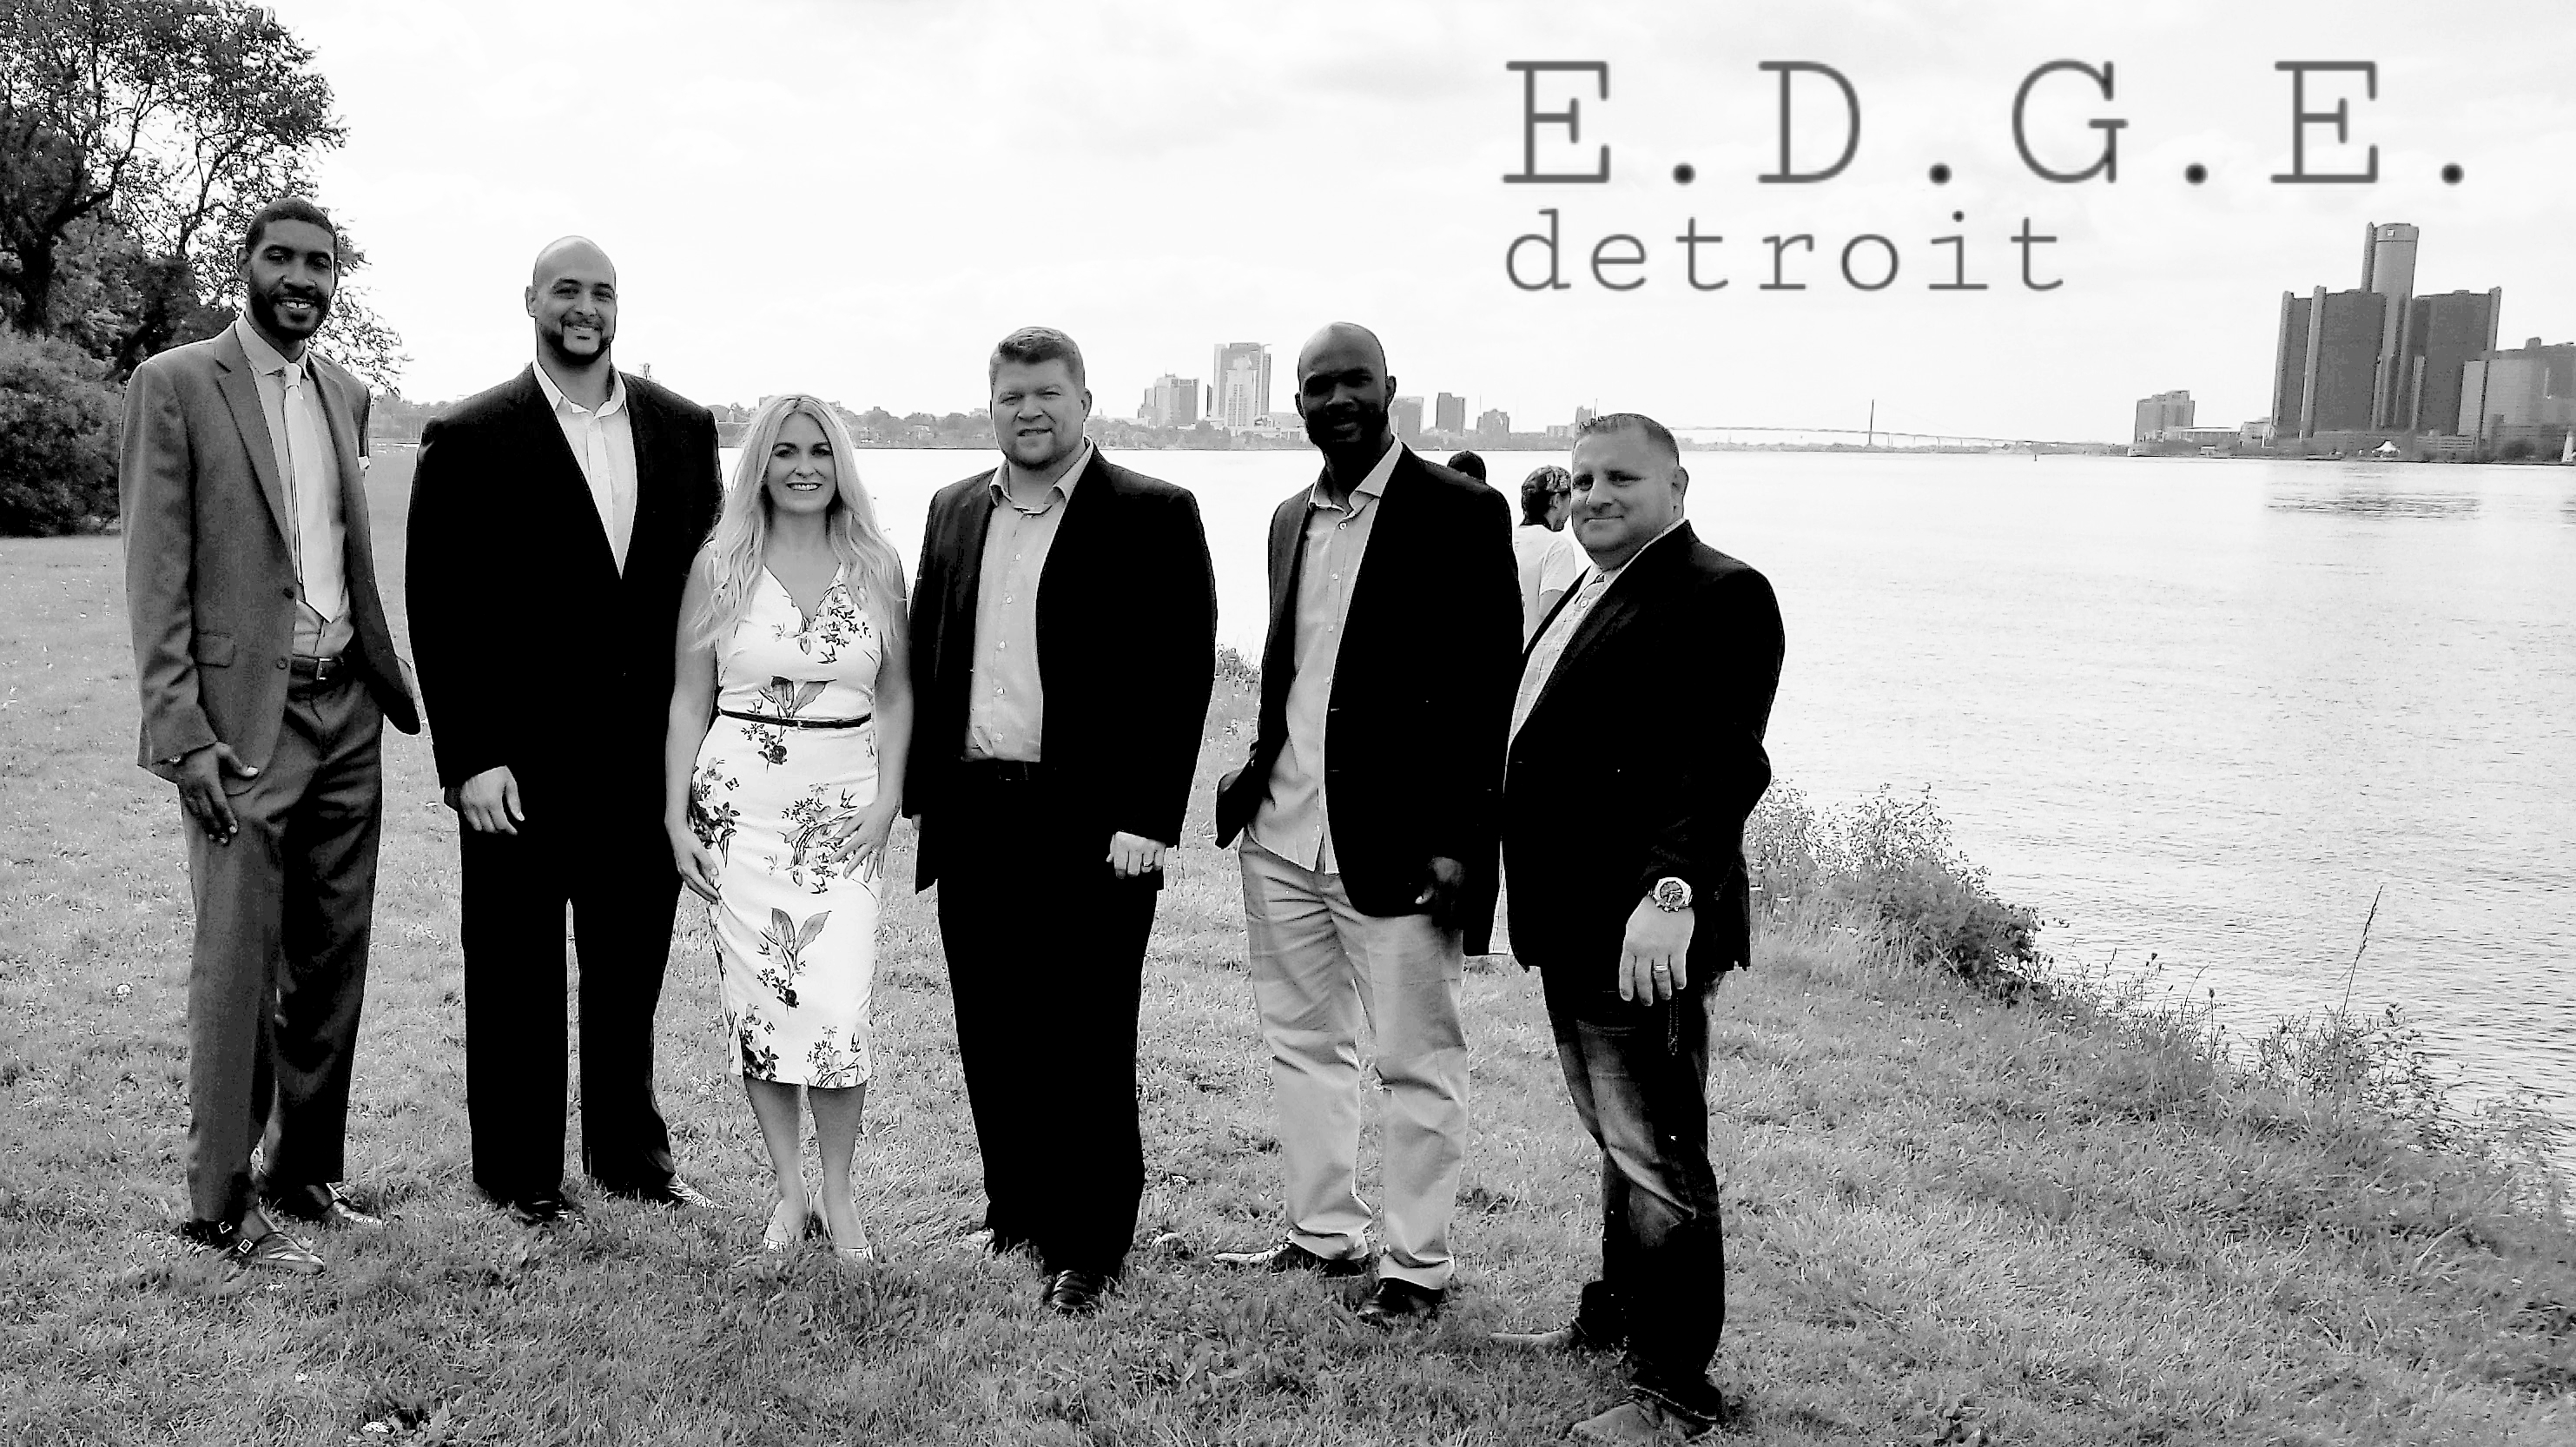 EDGE detroit group 2b Benjamin Galliway